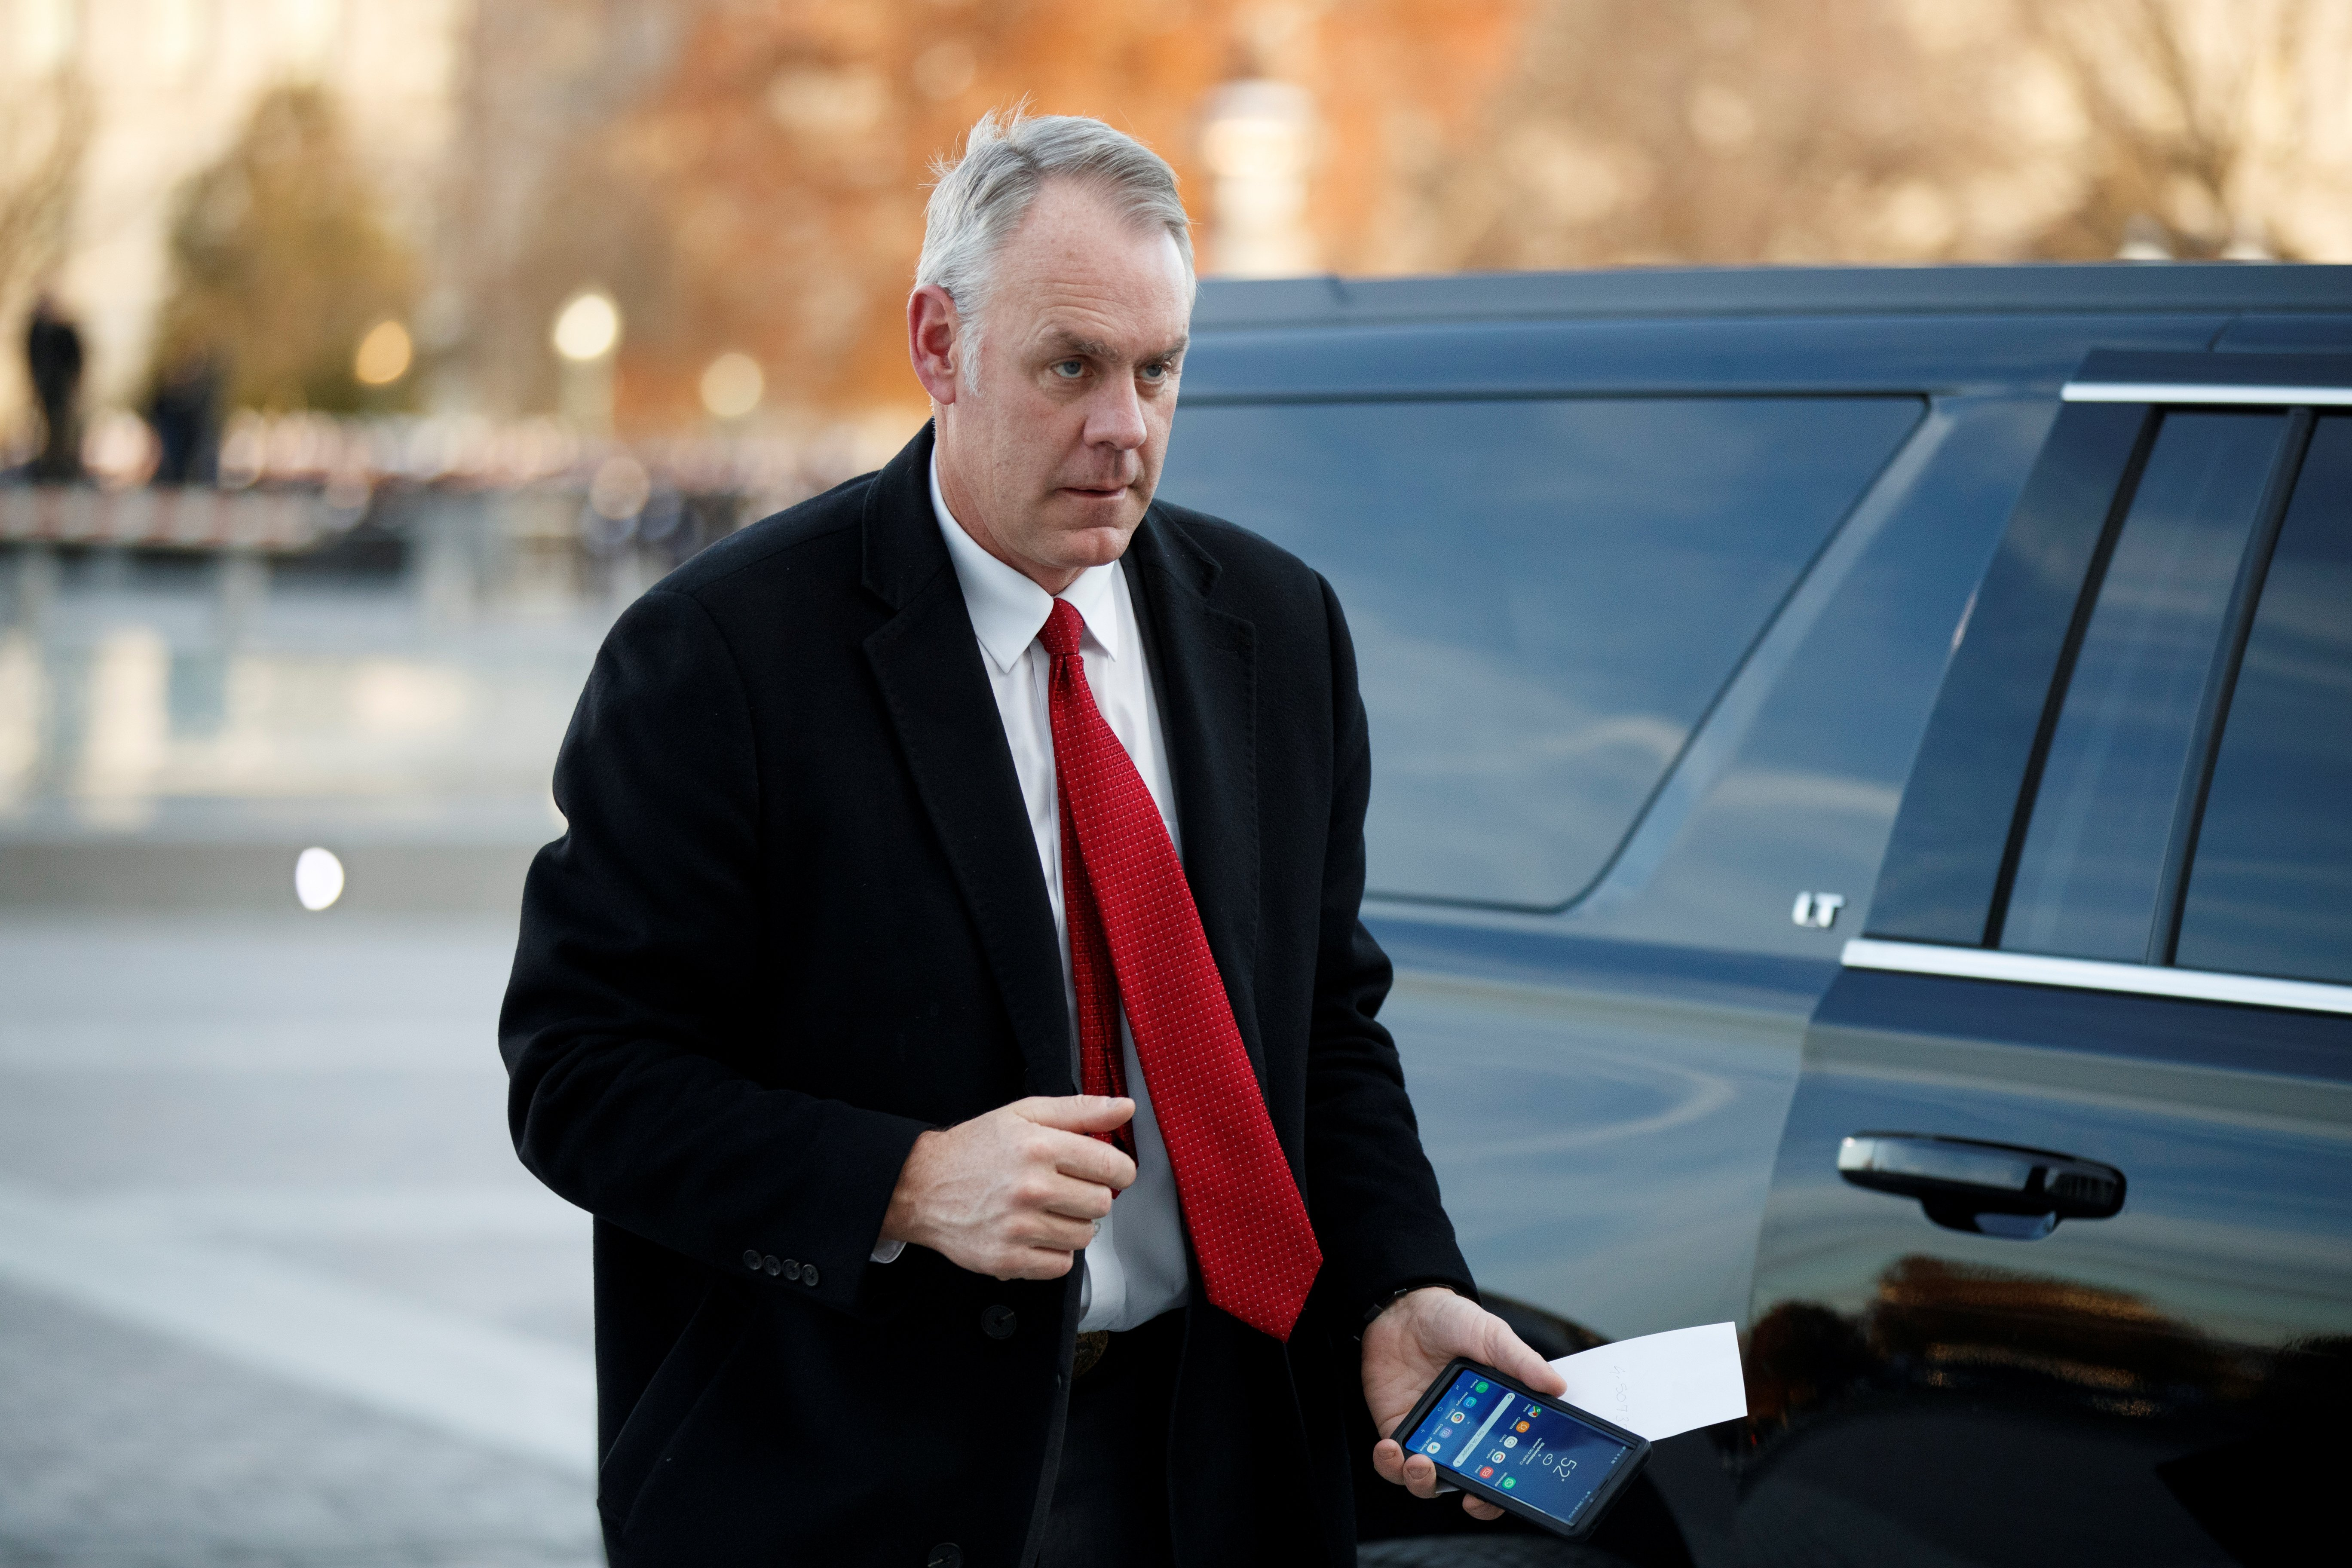 US Secretary of the Interior Ryan Zinke arrives at the US Capitol prior to the service for former President George H. W. Bush in Washington, DC, USA, 03 December 2018. Shawn Thew/Pool via REUTERS